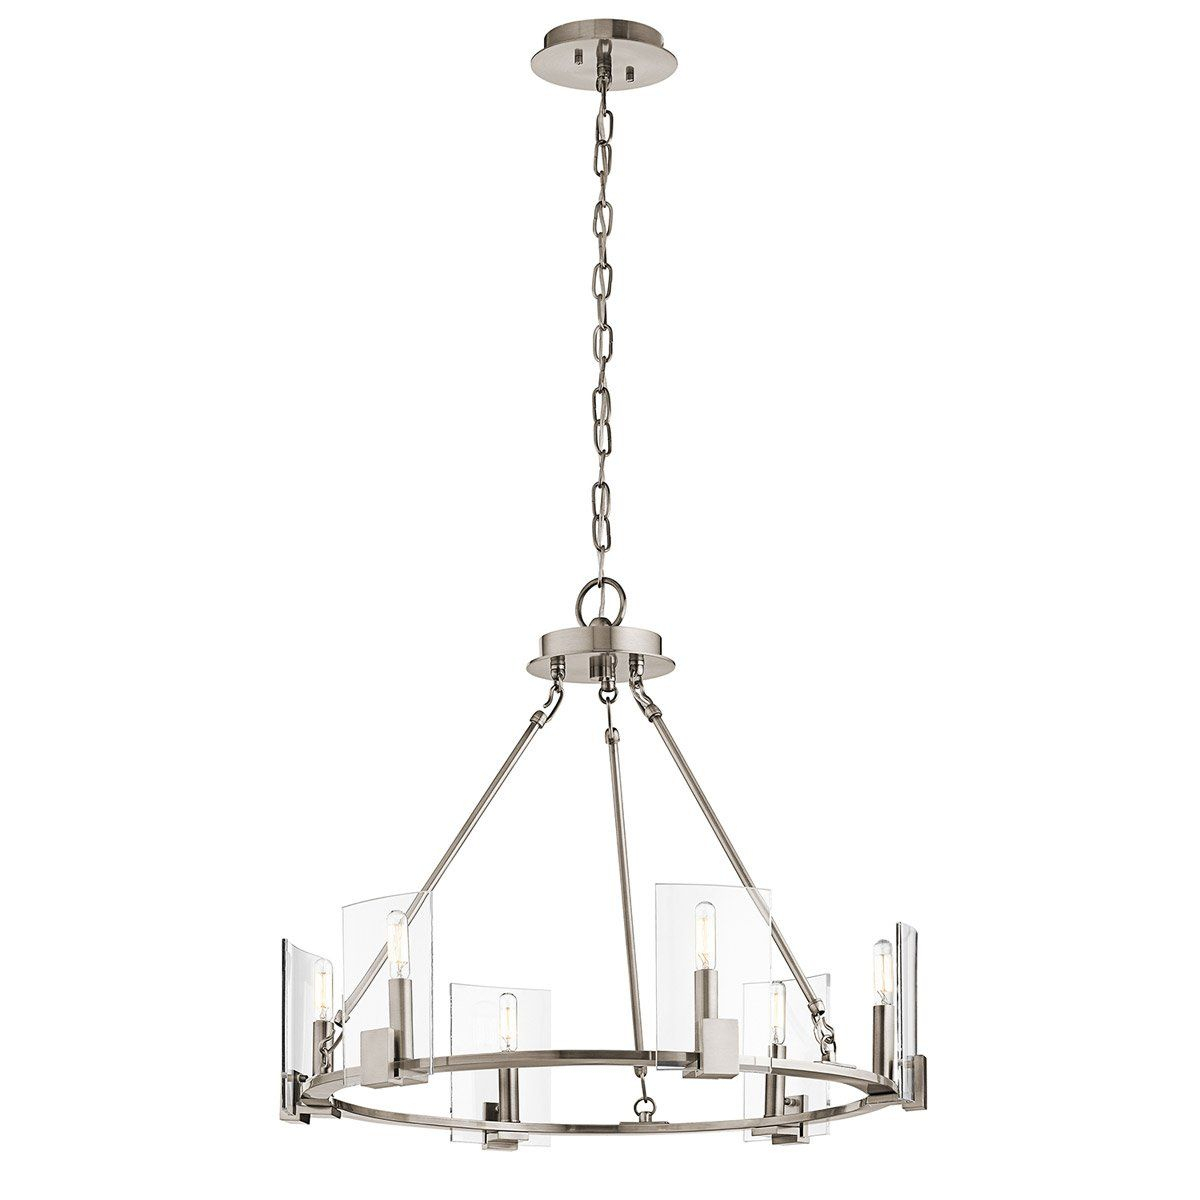 Chandeliers 6 Light With Classic Pewter Finish Aluminum throughout Sherri 6-Light Chandeliers (Image 4 of 30)